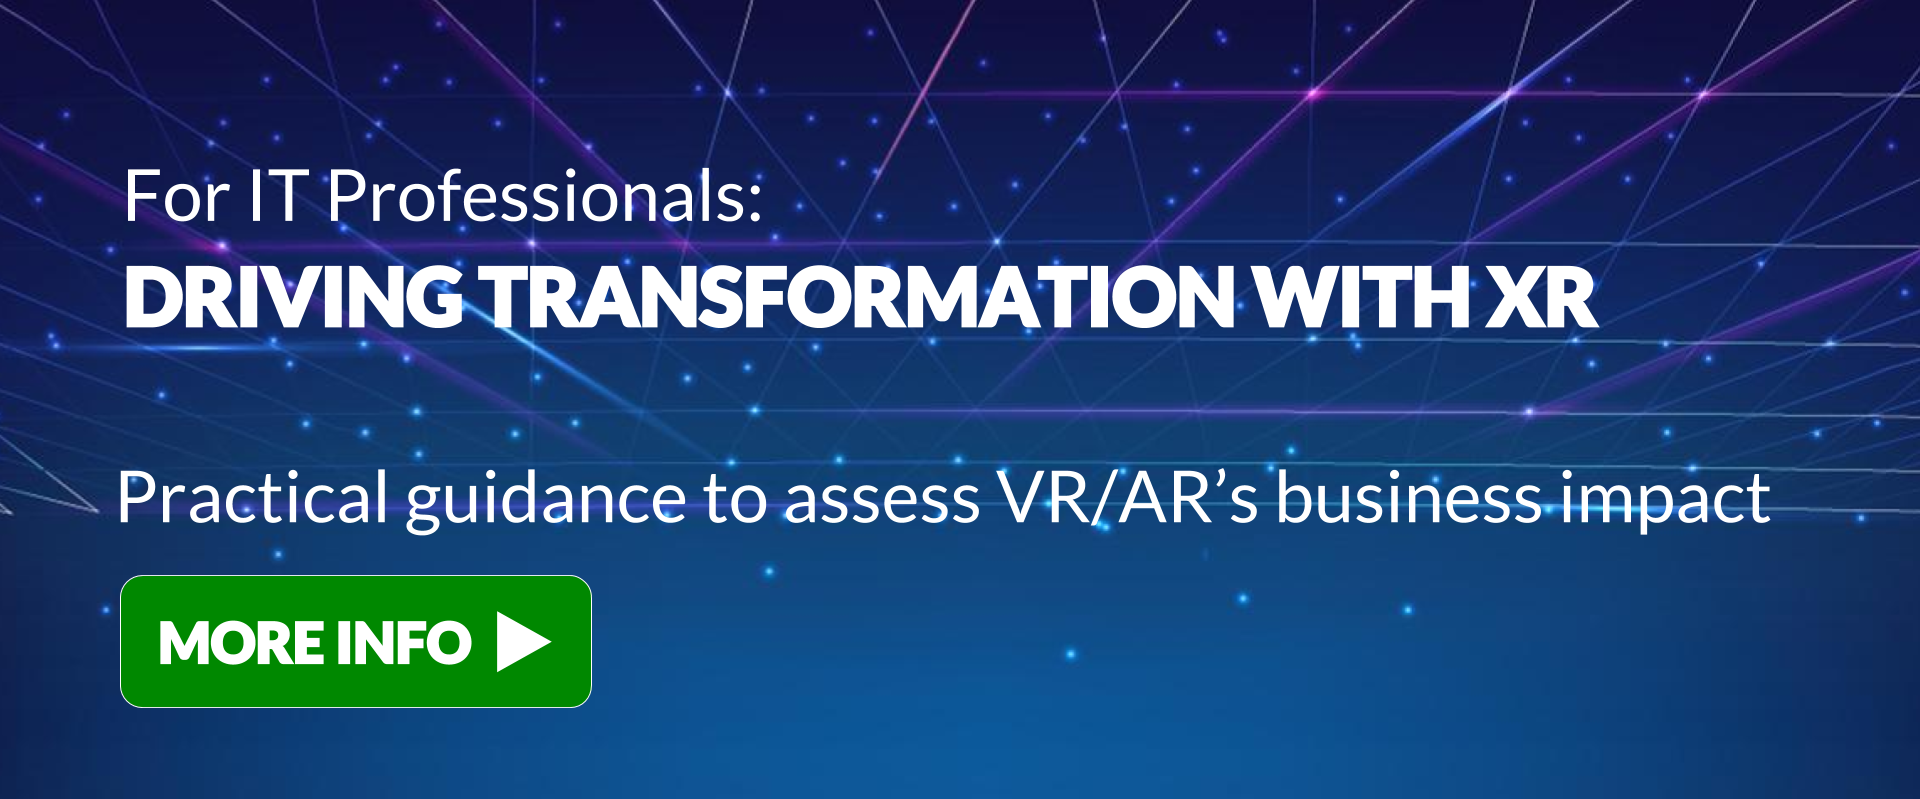 Driving Transformation with XR